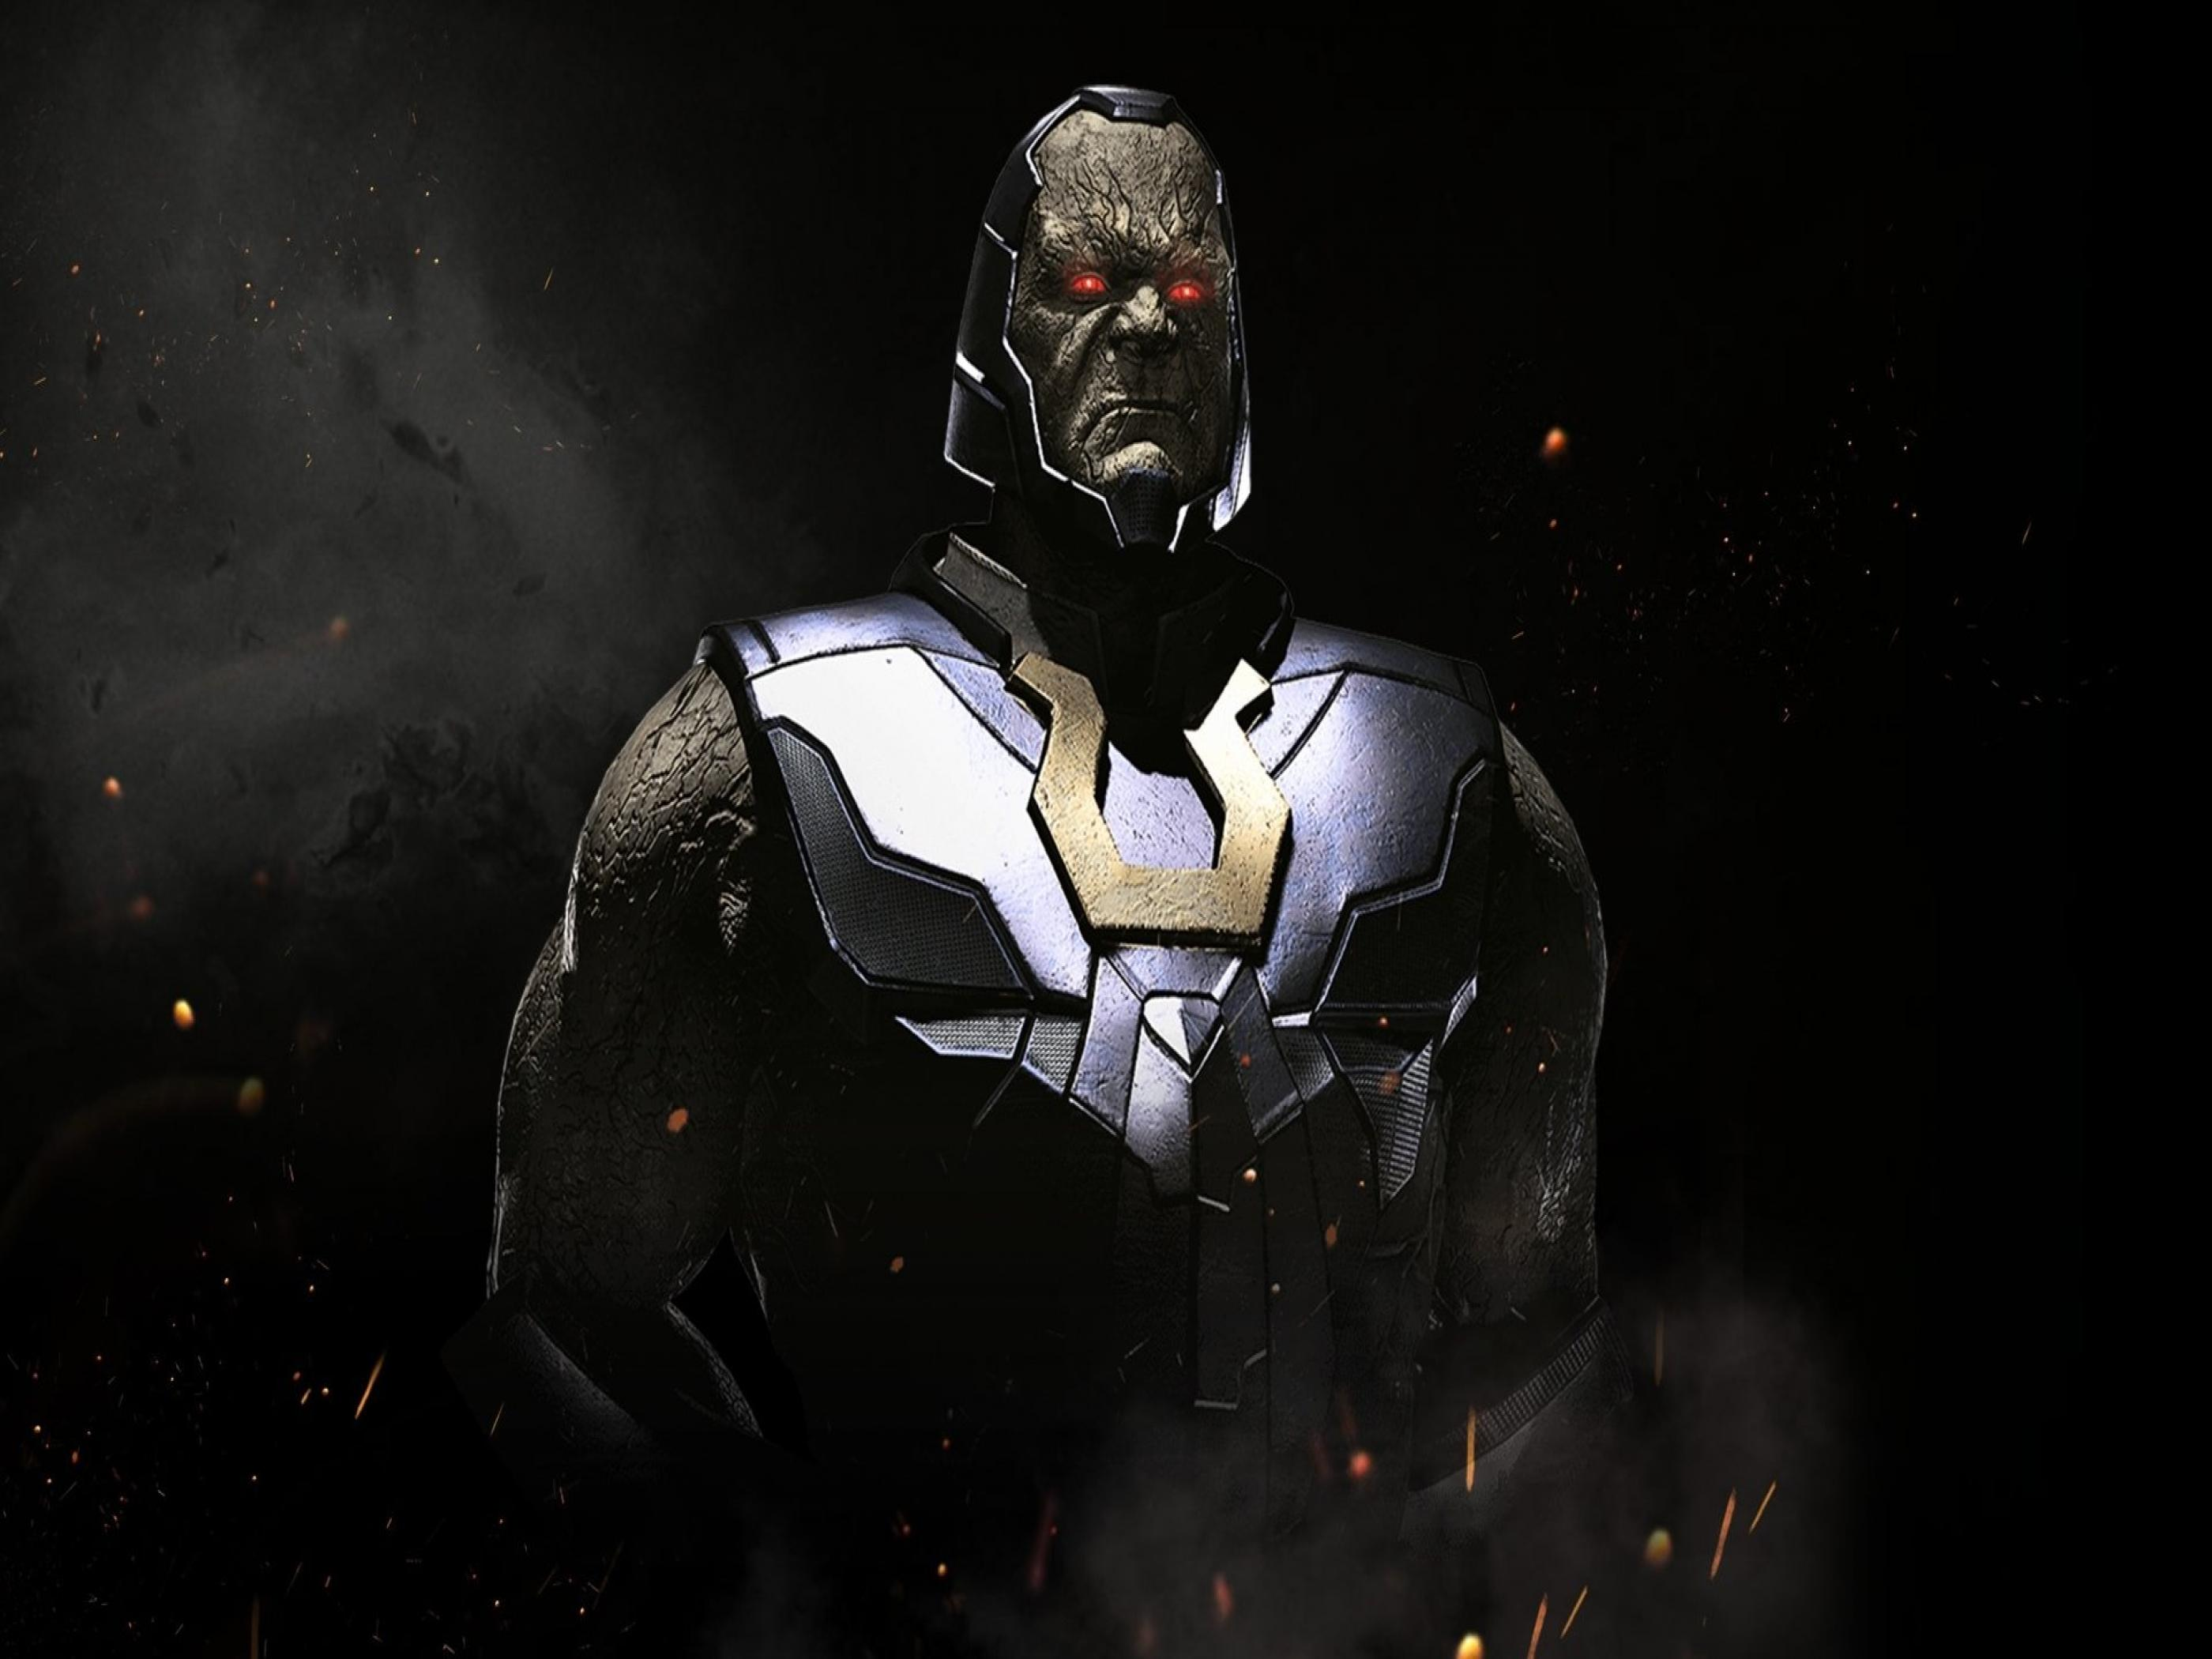 Darkseid Wallpapers 5J5YW3L 1920x1080   4USkY 2800x2100